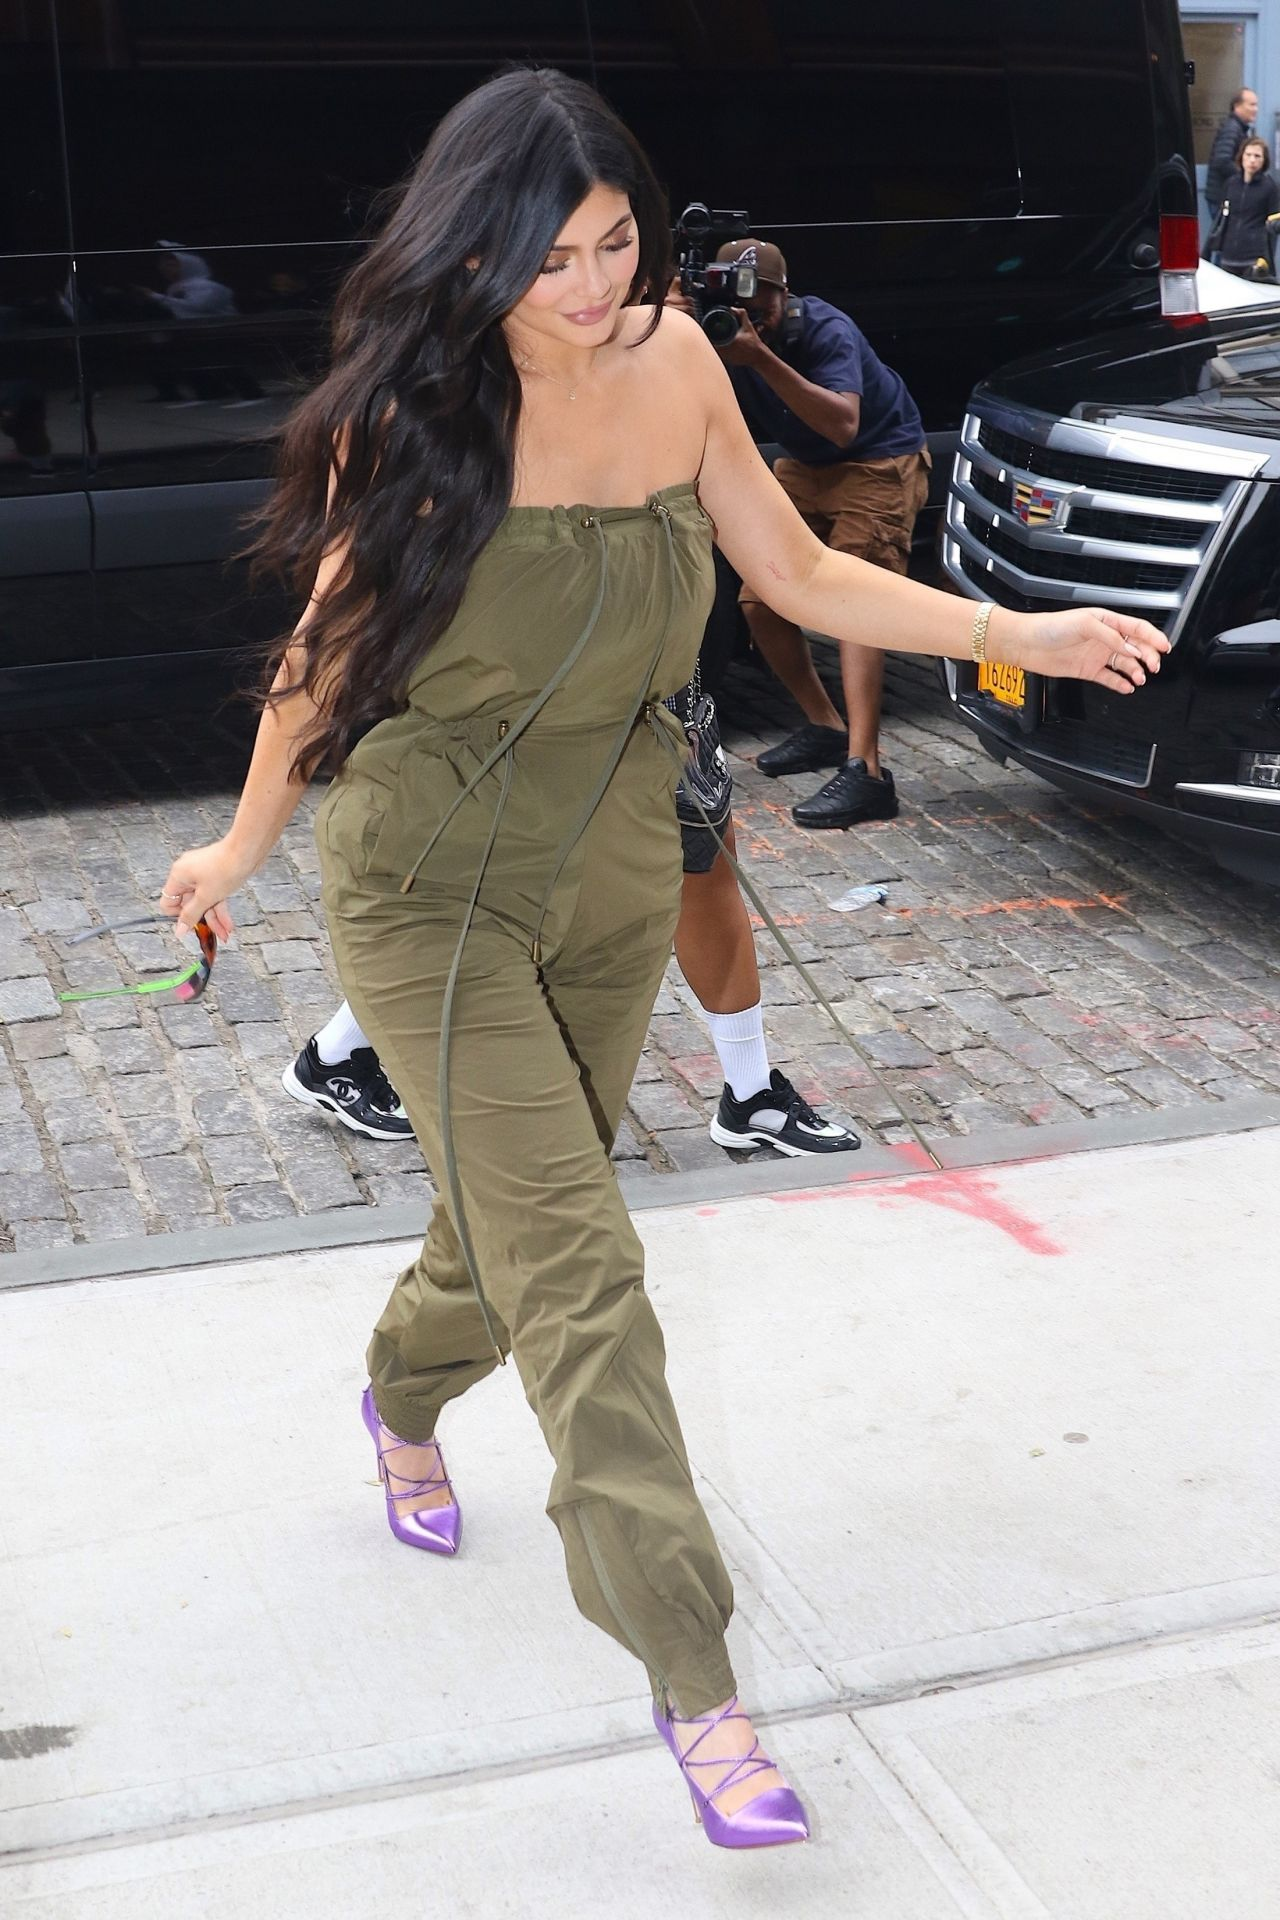 kylie jenner style and fashion new york city 05062018